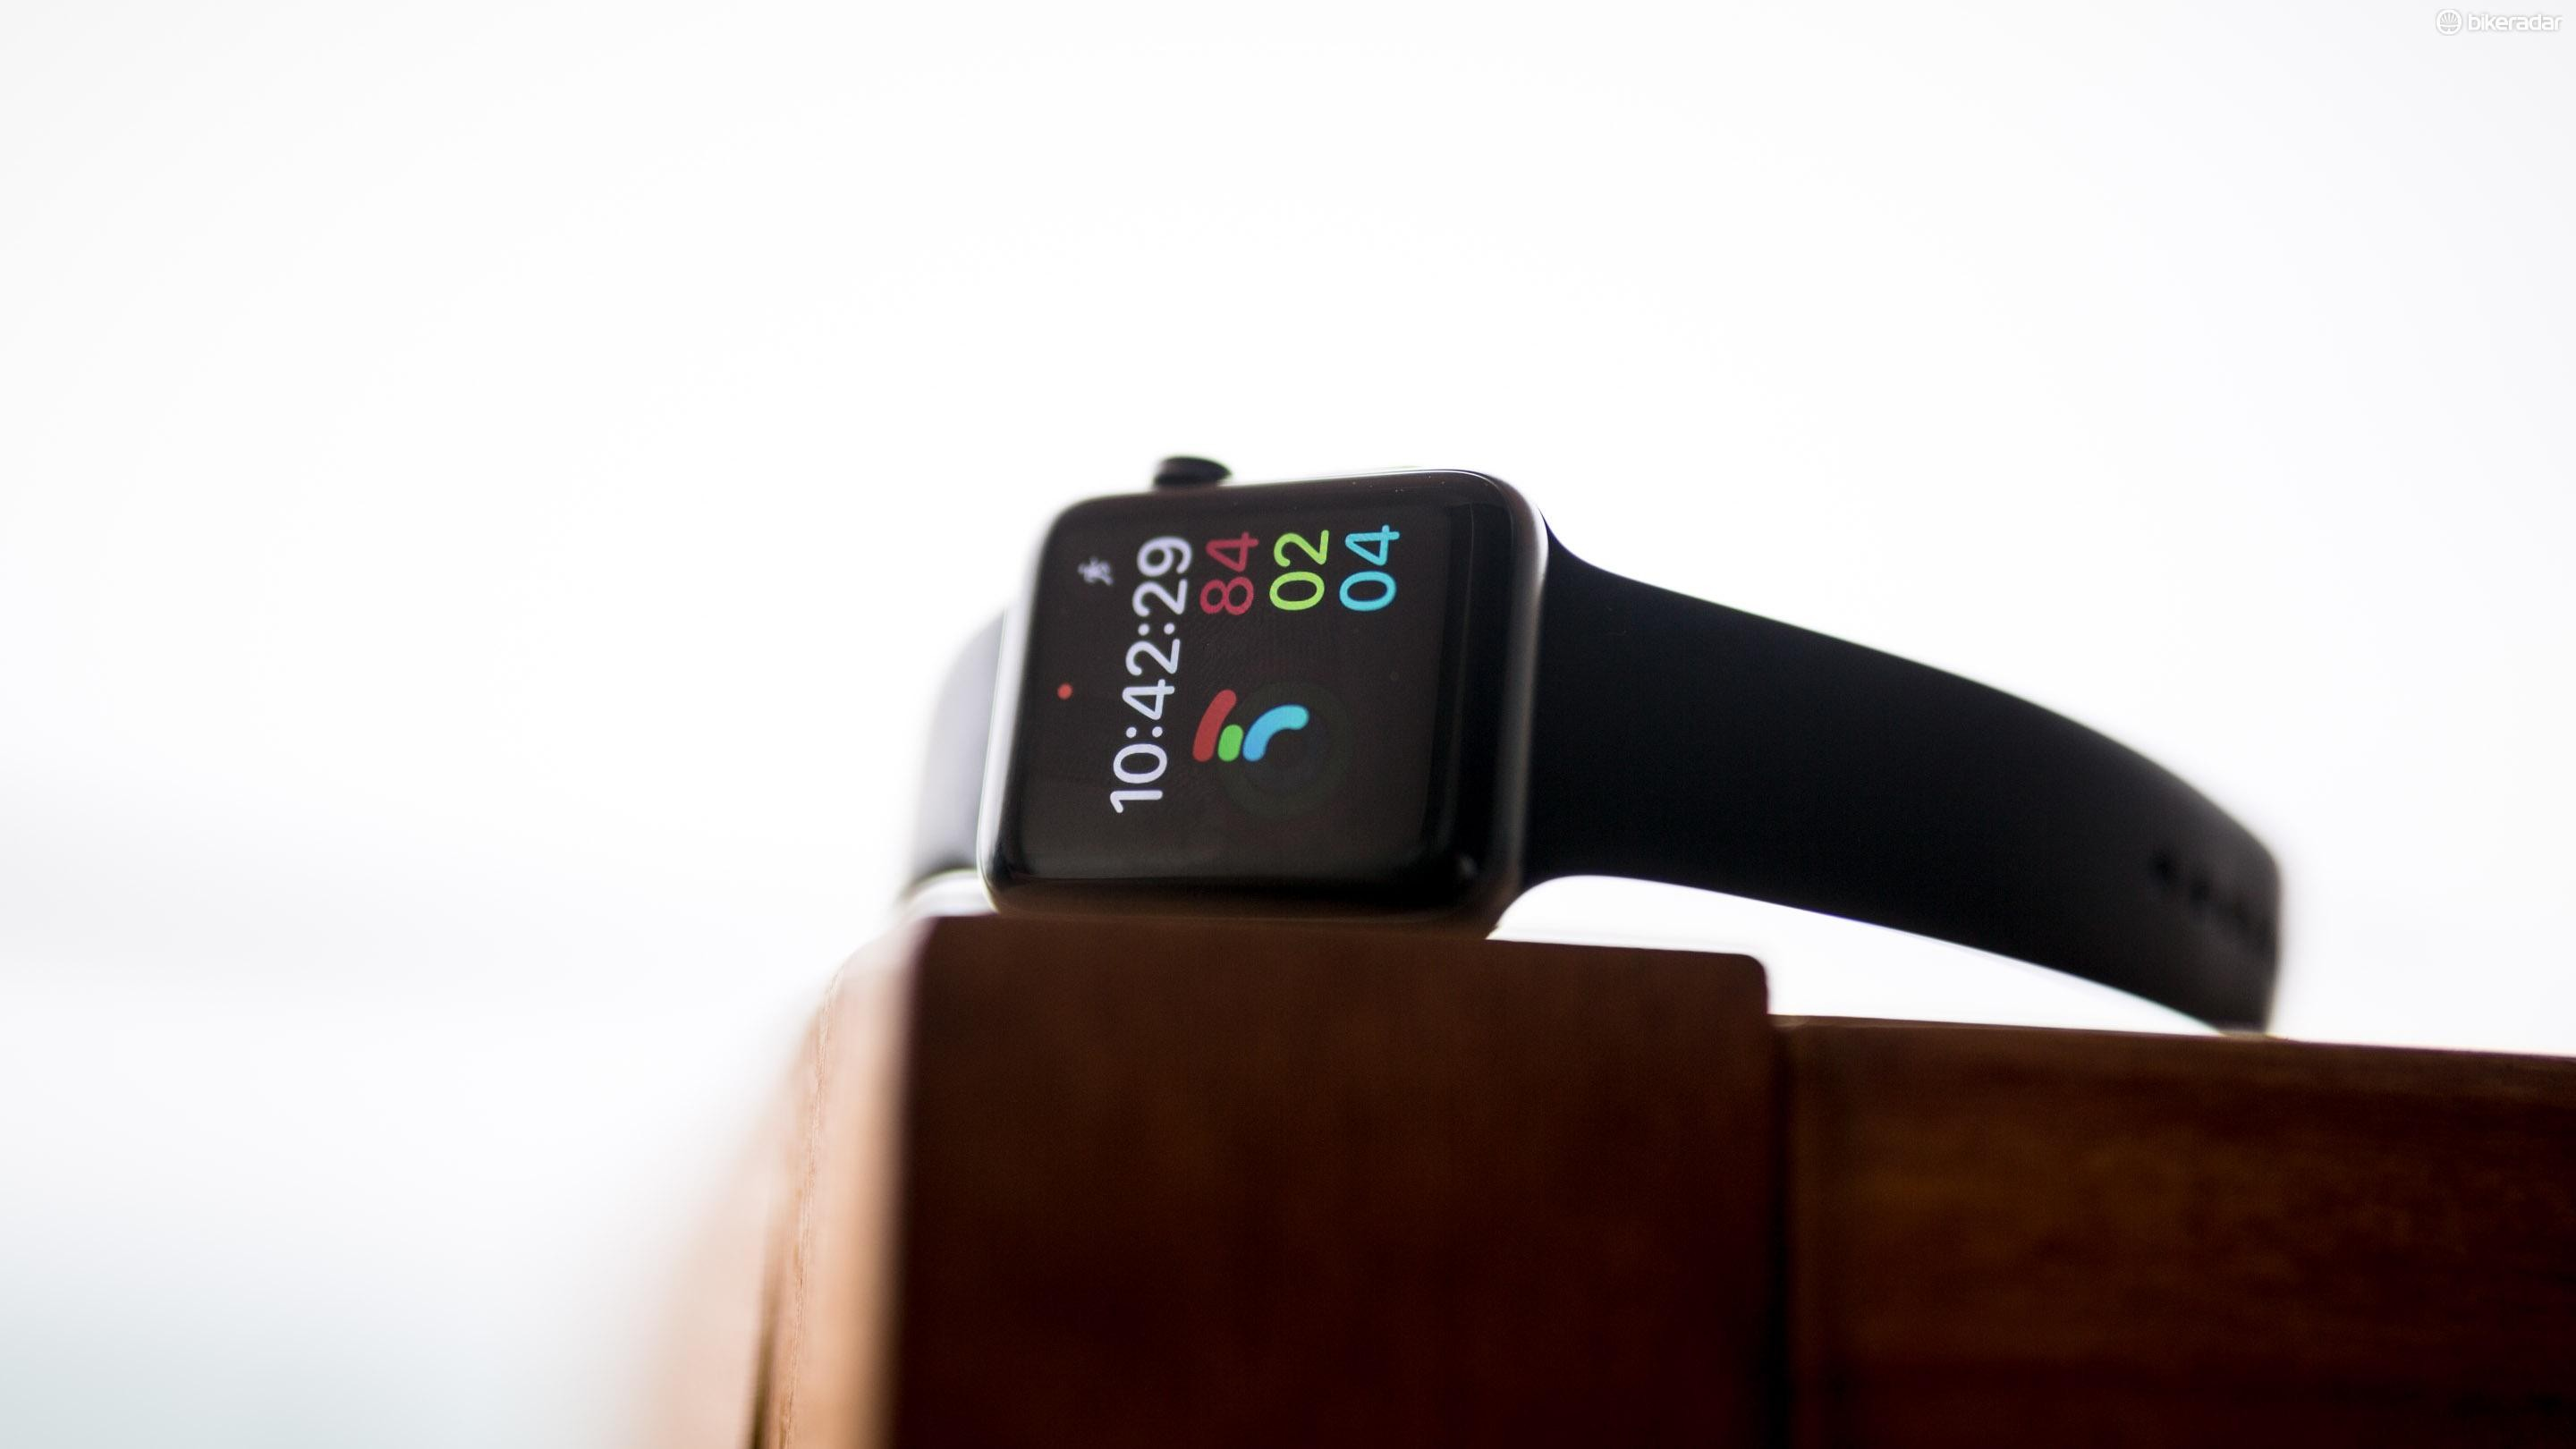 My initial impression of the Apple Watch Series 2 is that it's a much more capable fitness tracker then the original